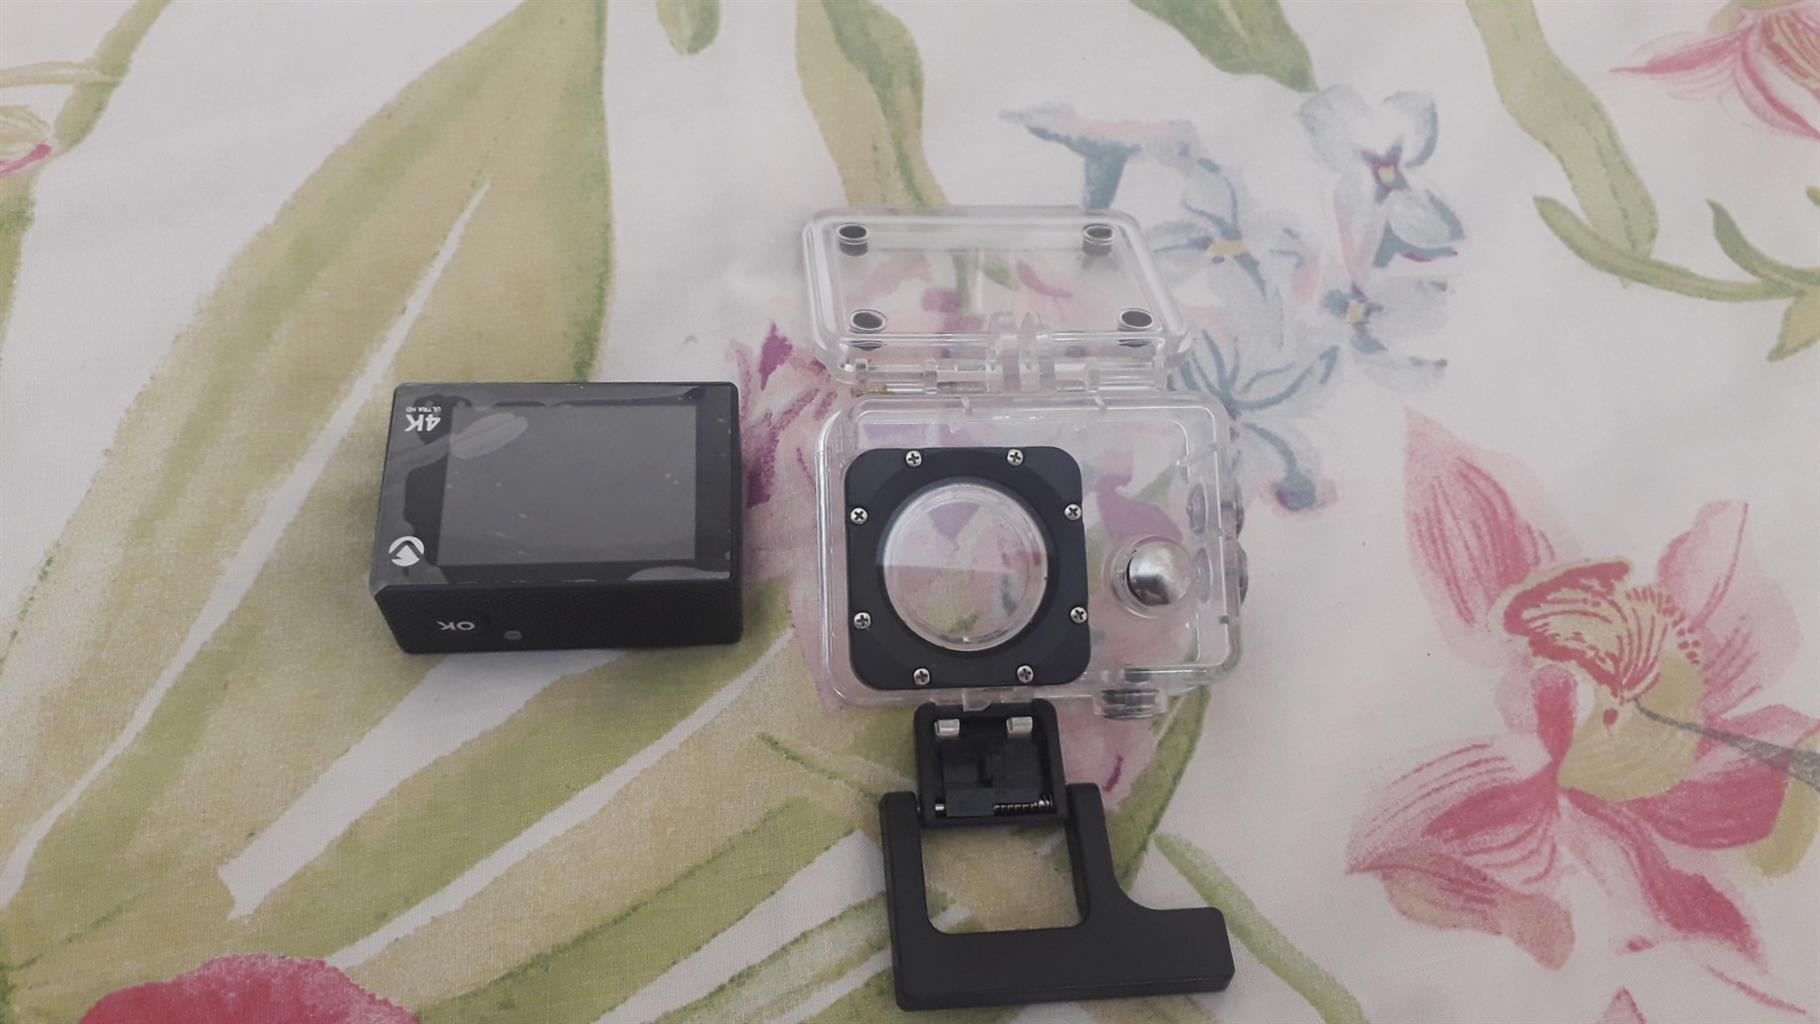 I'm seling a volkano camera it can take pictures under the Walter